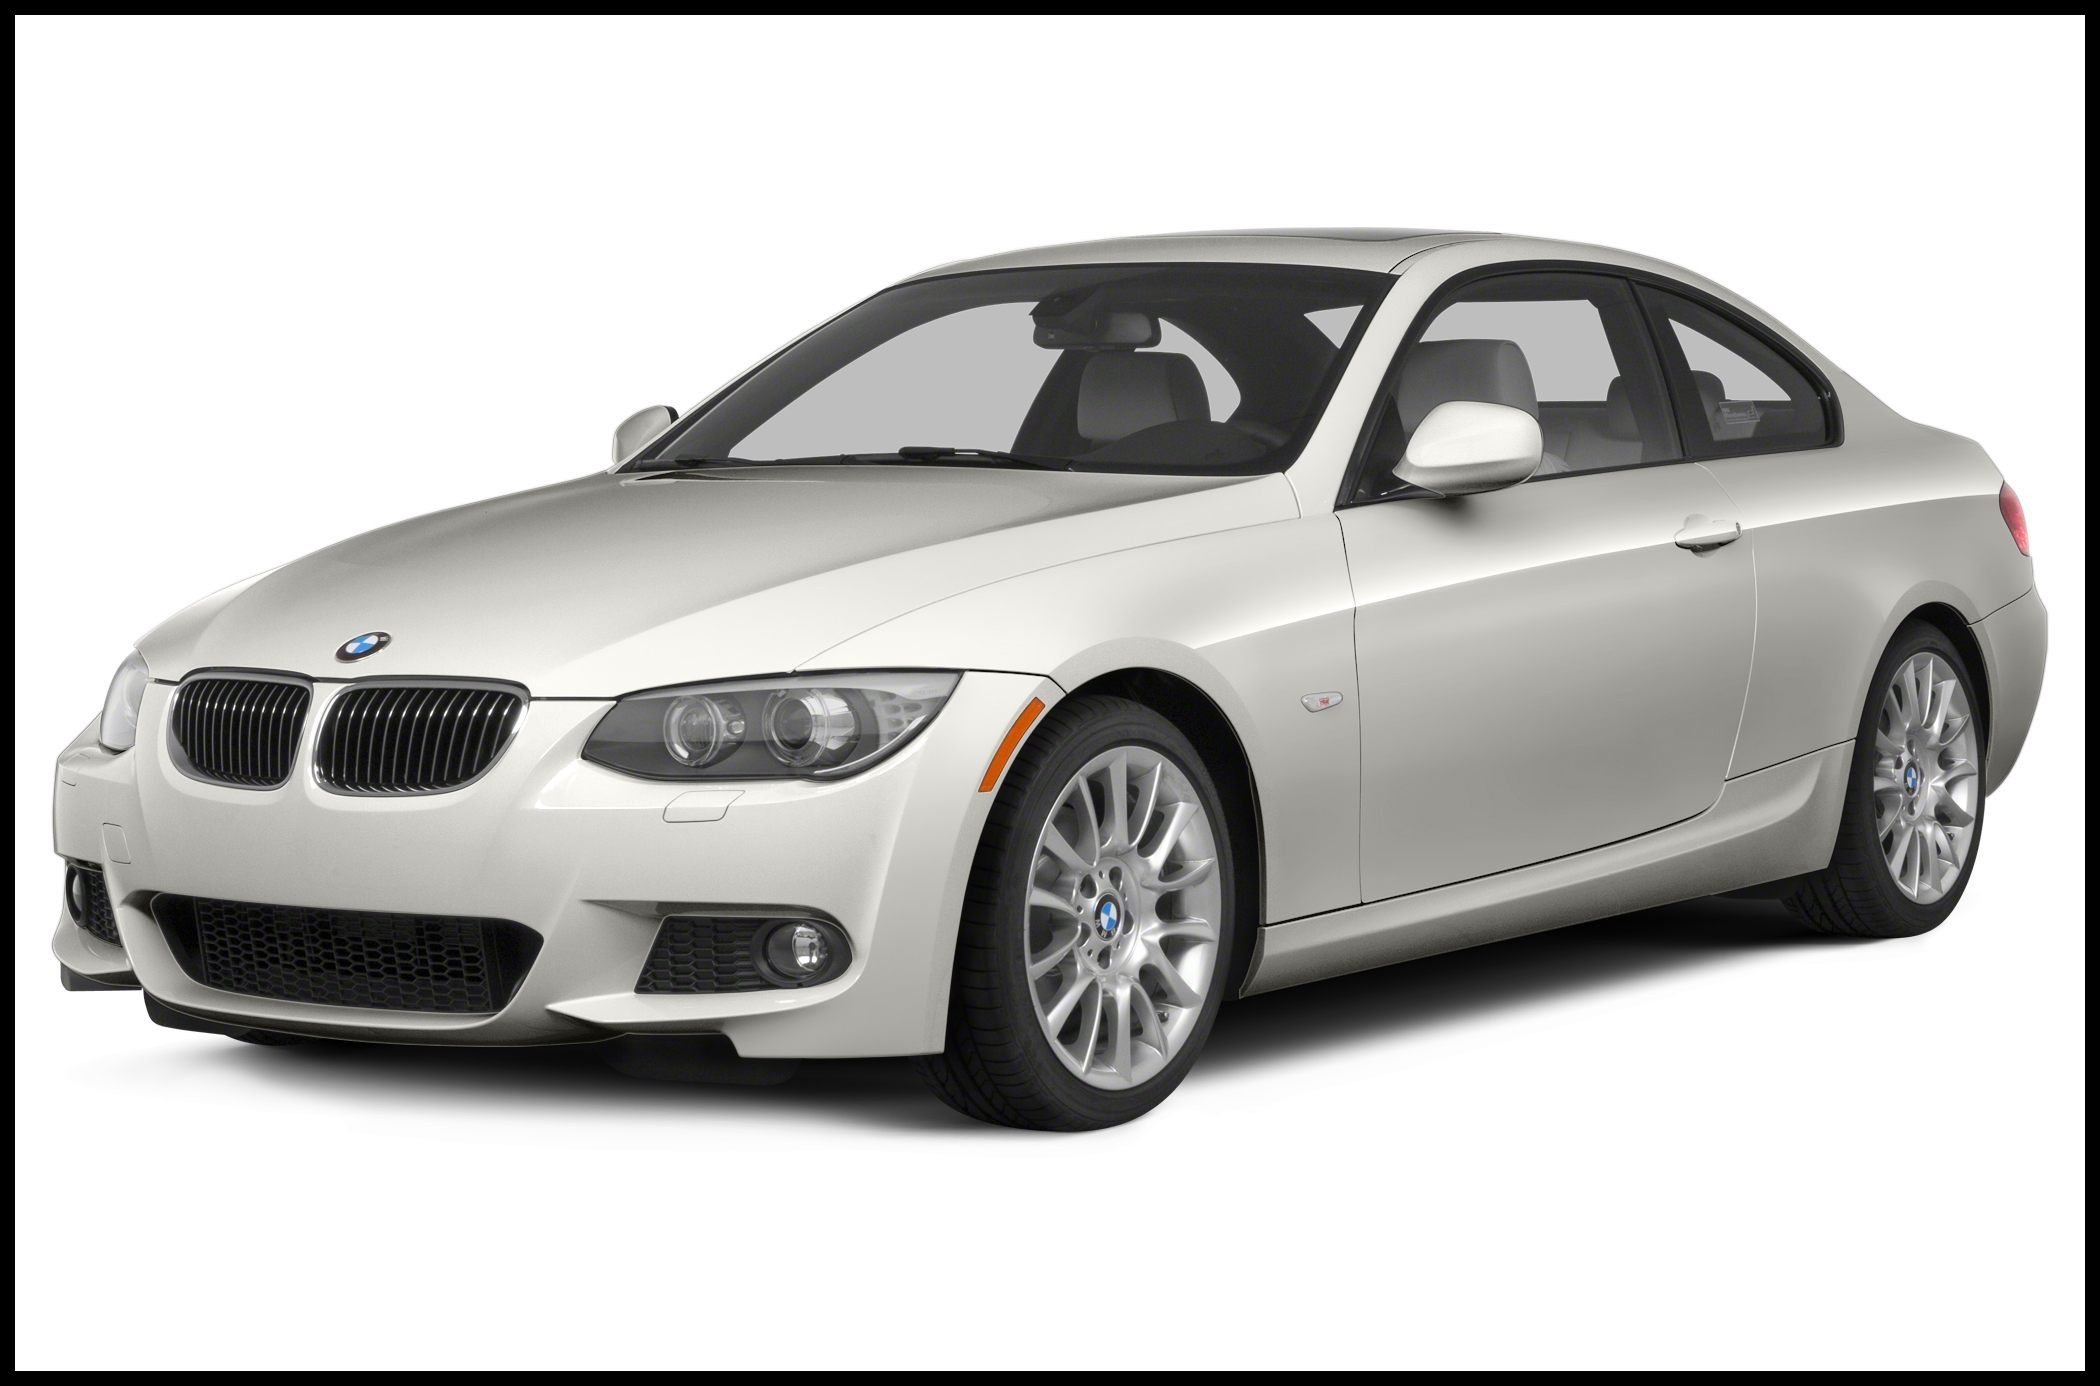 2012 Bmw 335i Price Lovely 2013 Bmw 335 Specs and Prices